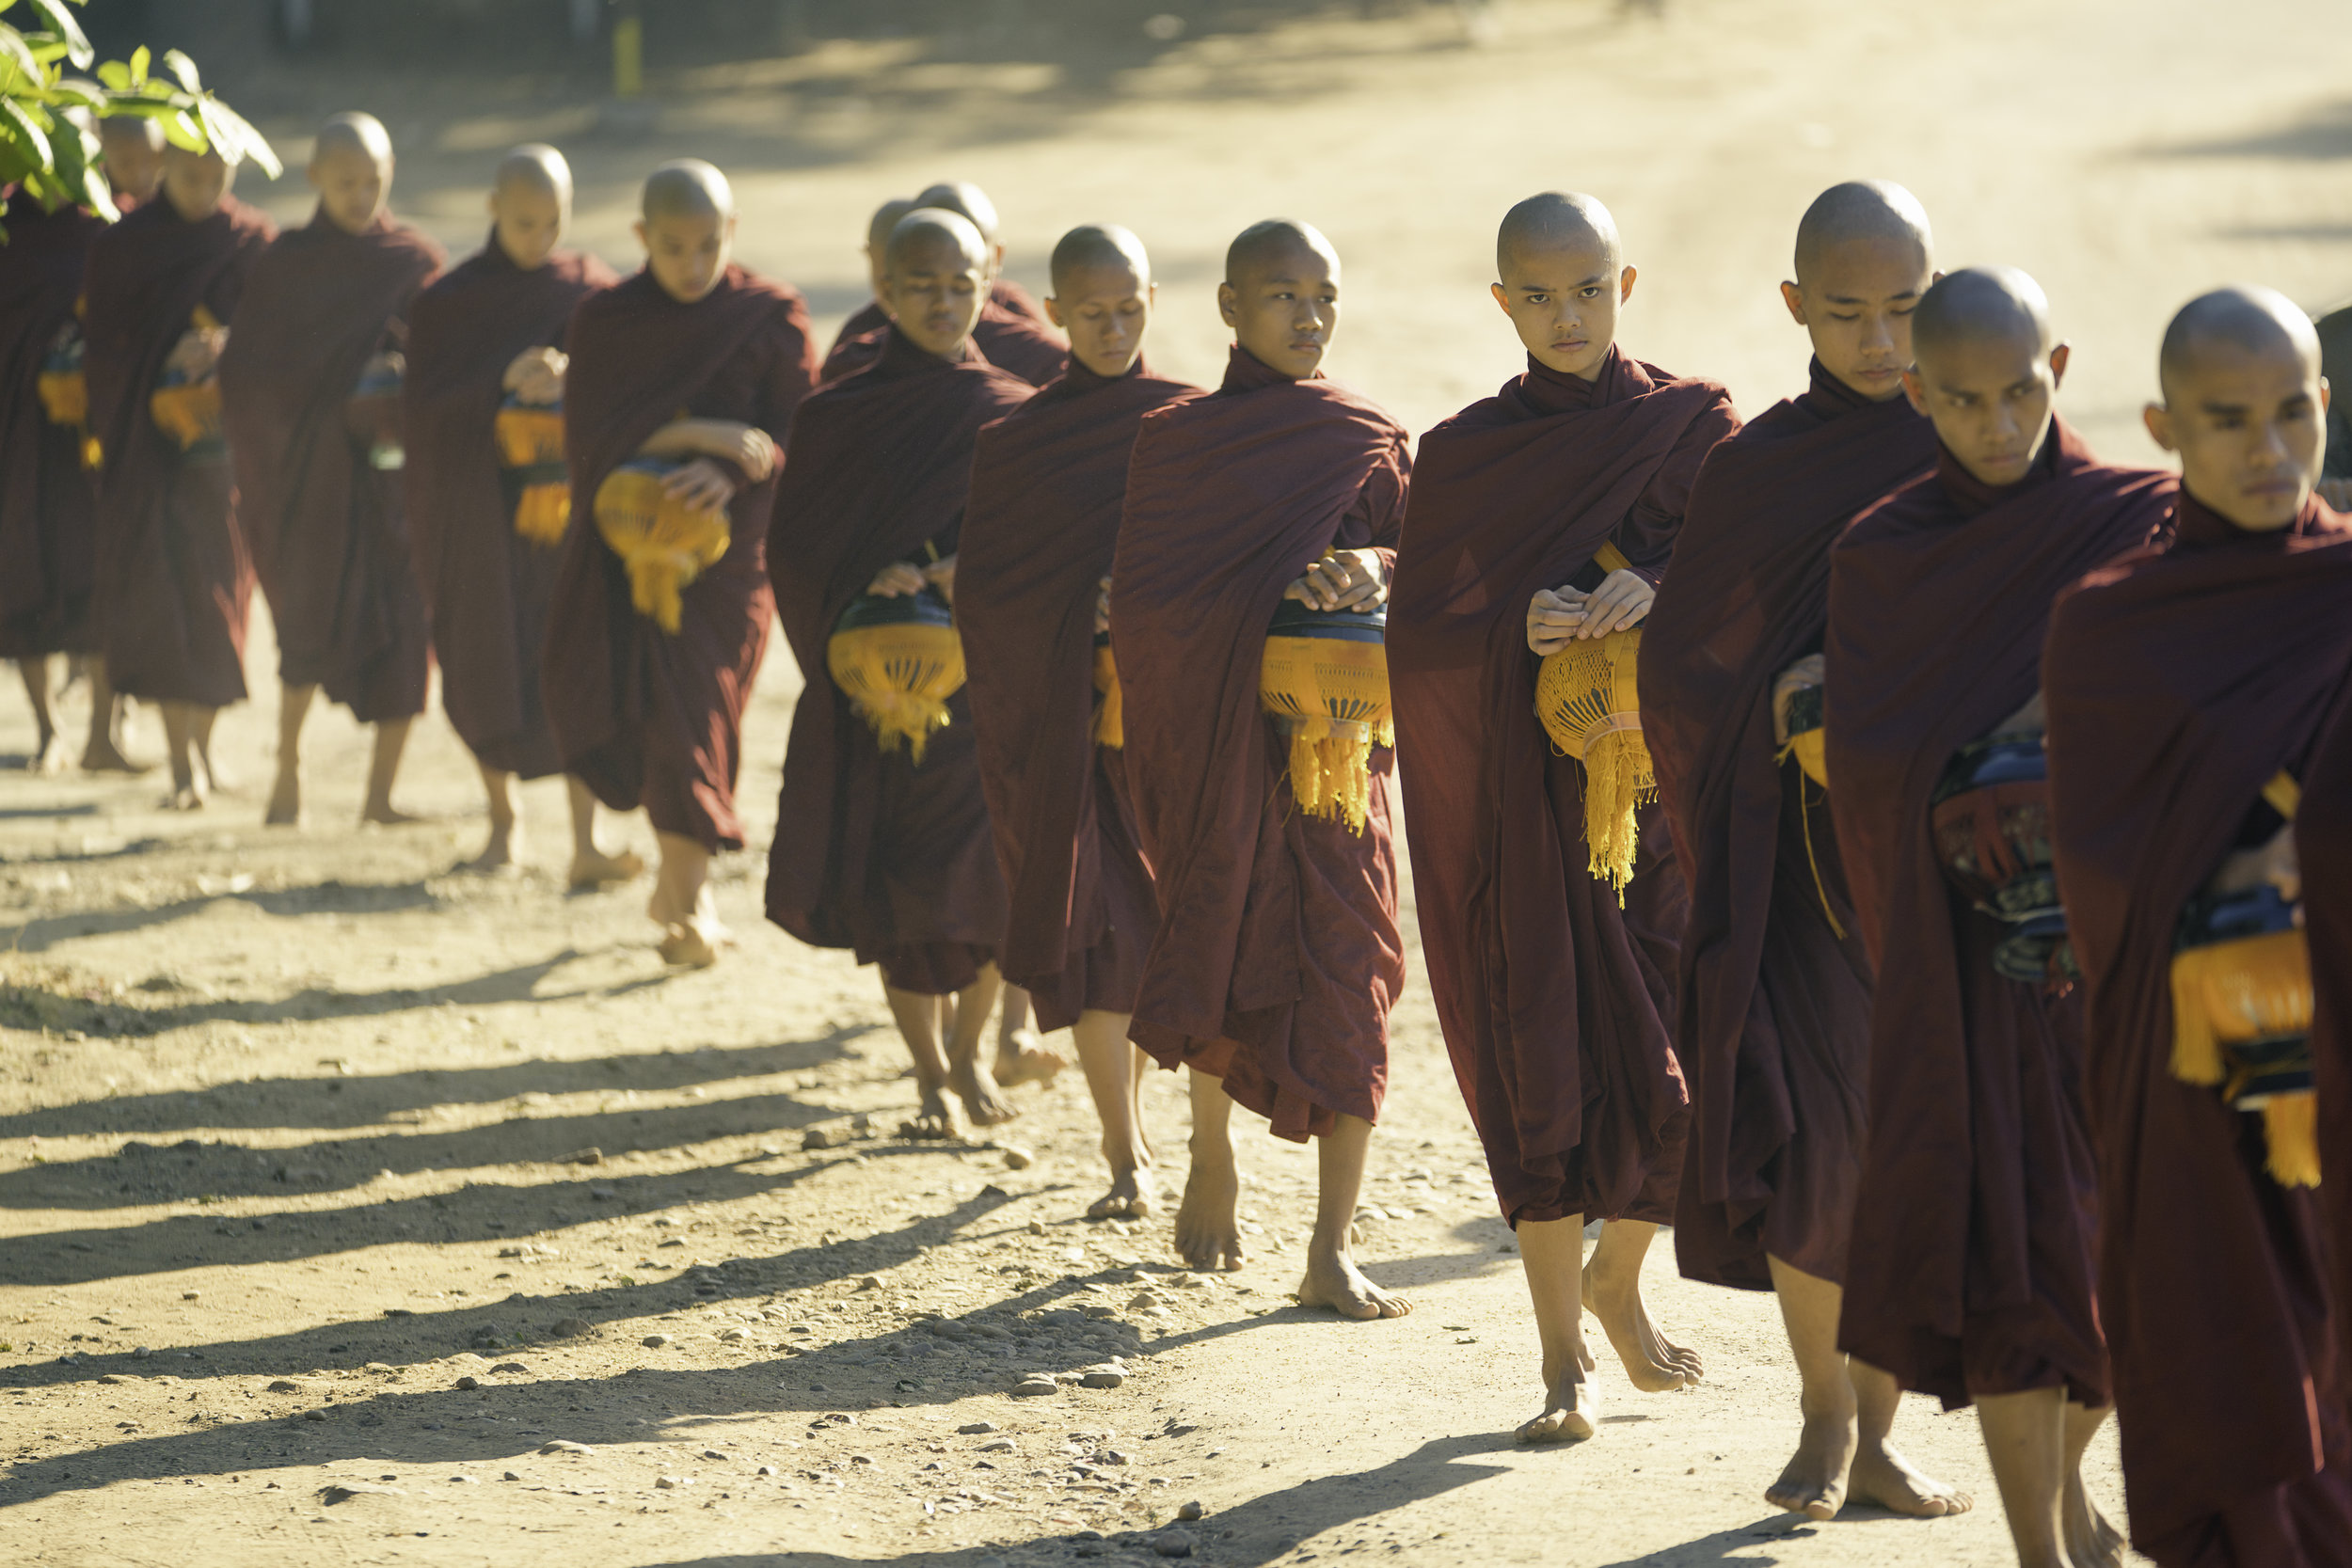 Monks accepting alms in the morning.